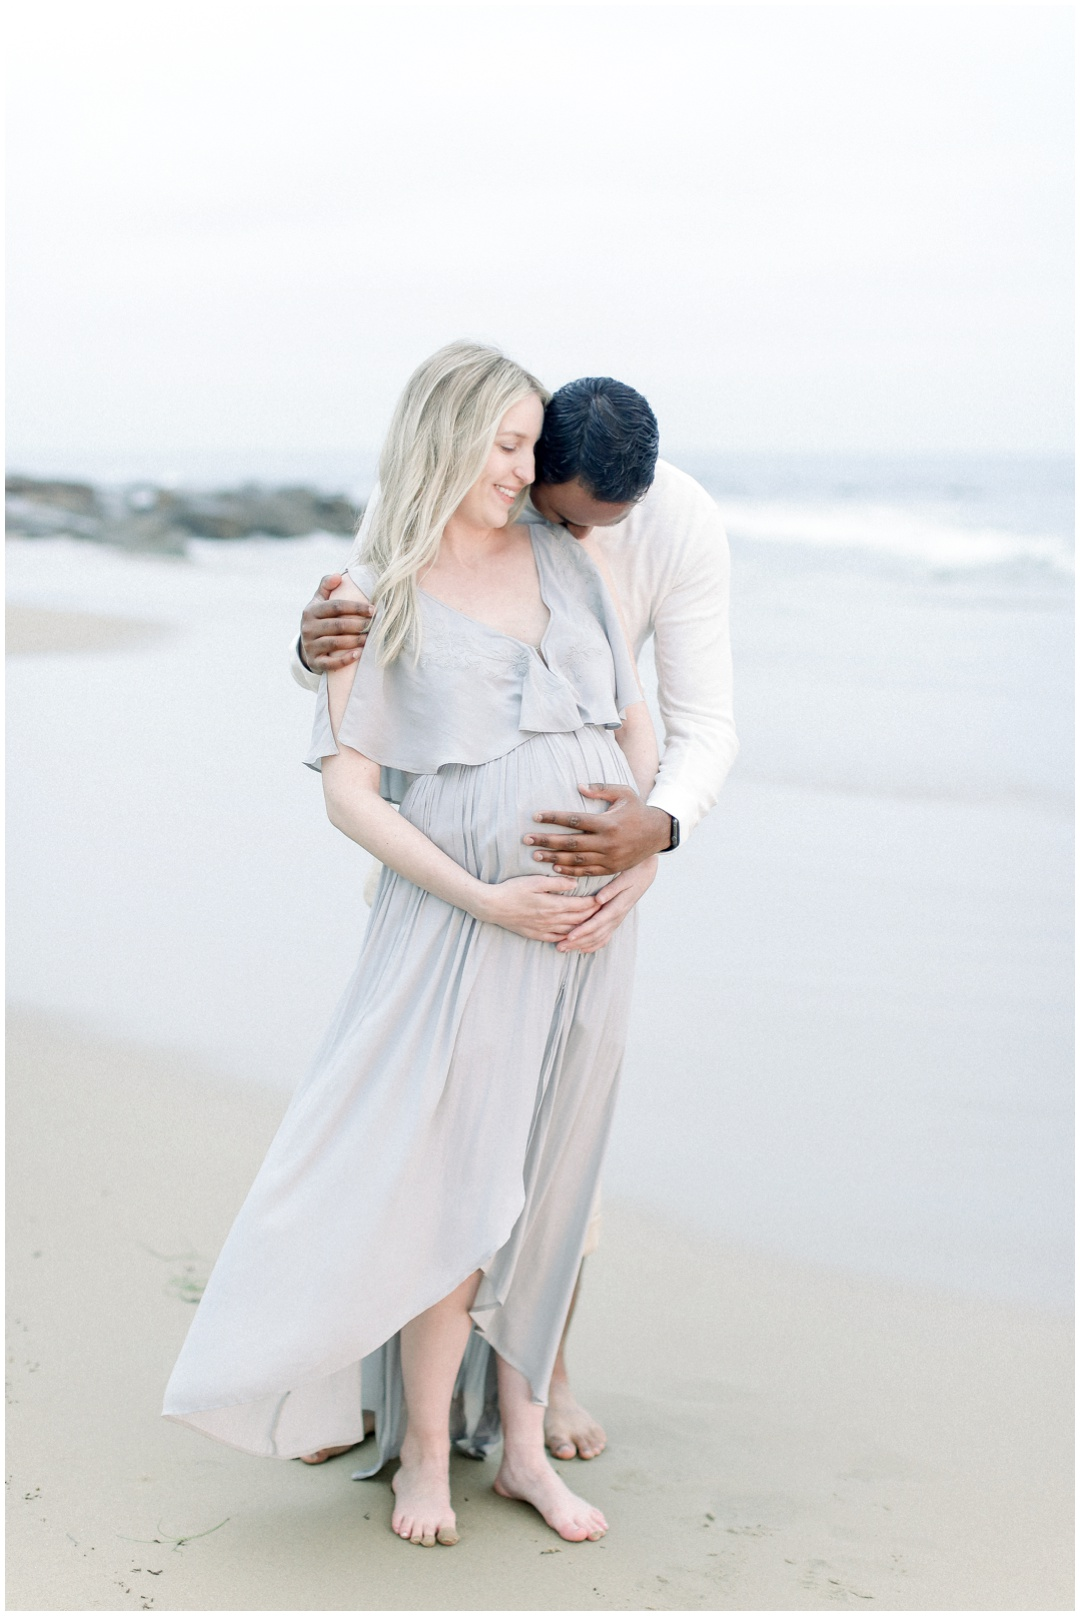 Newport_Beach_Newborn_Light_Airy_Natural_Photographer_Newport_Beach_Photographer_Orange_County_Family_Photographer_Cori_Kleckner_Photography_Huntington_Beach_Photographer_Family_OC_Maternity_Jennifer_Spohn_Rahul_Spohn_3624.jpg